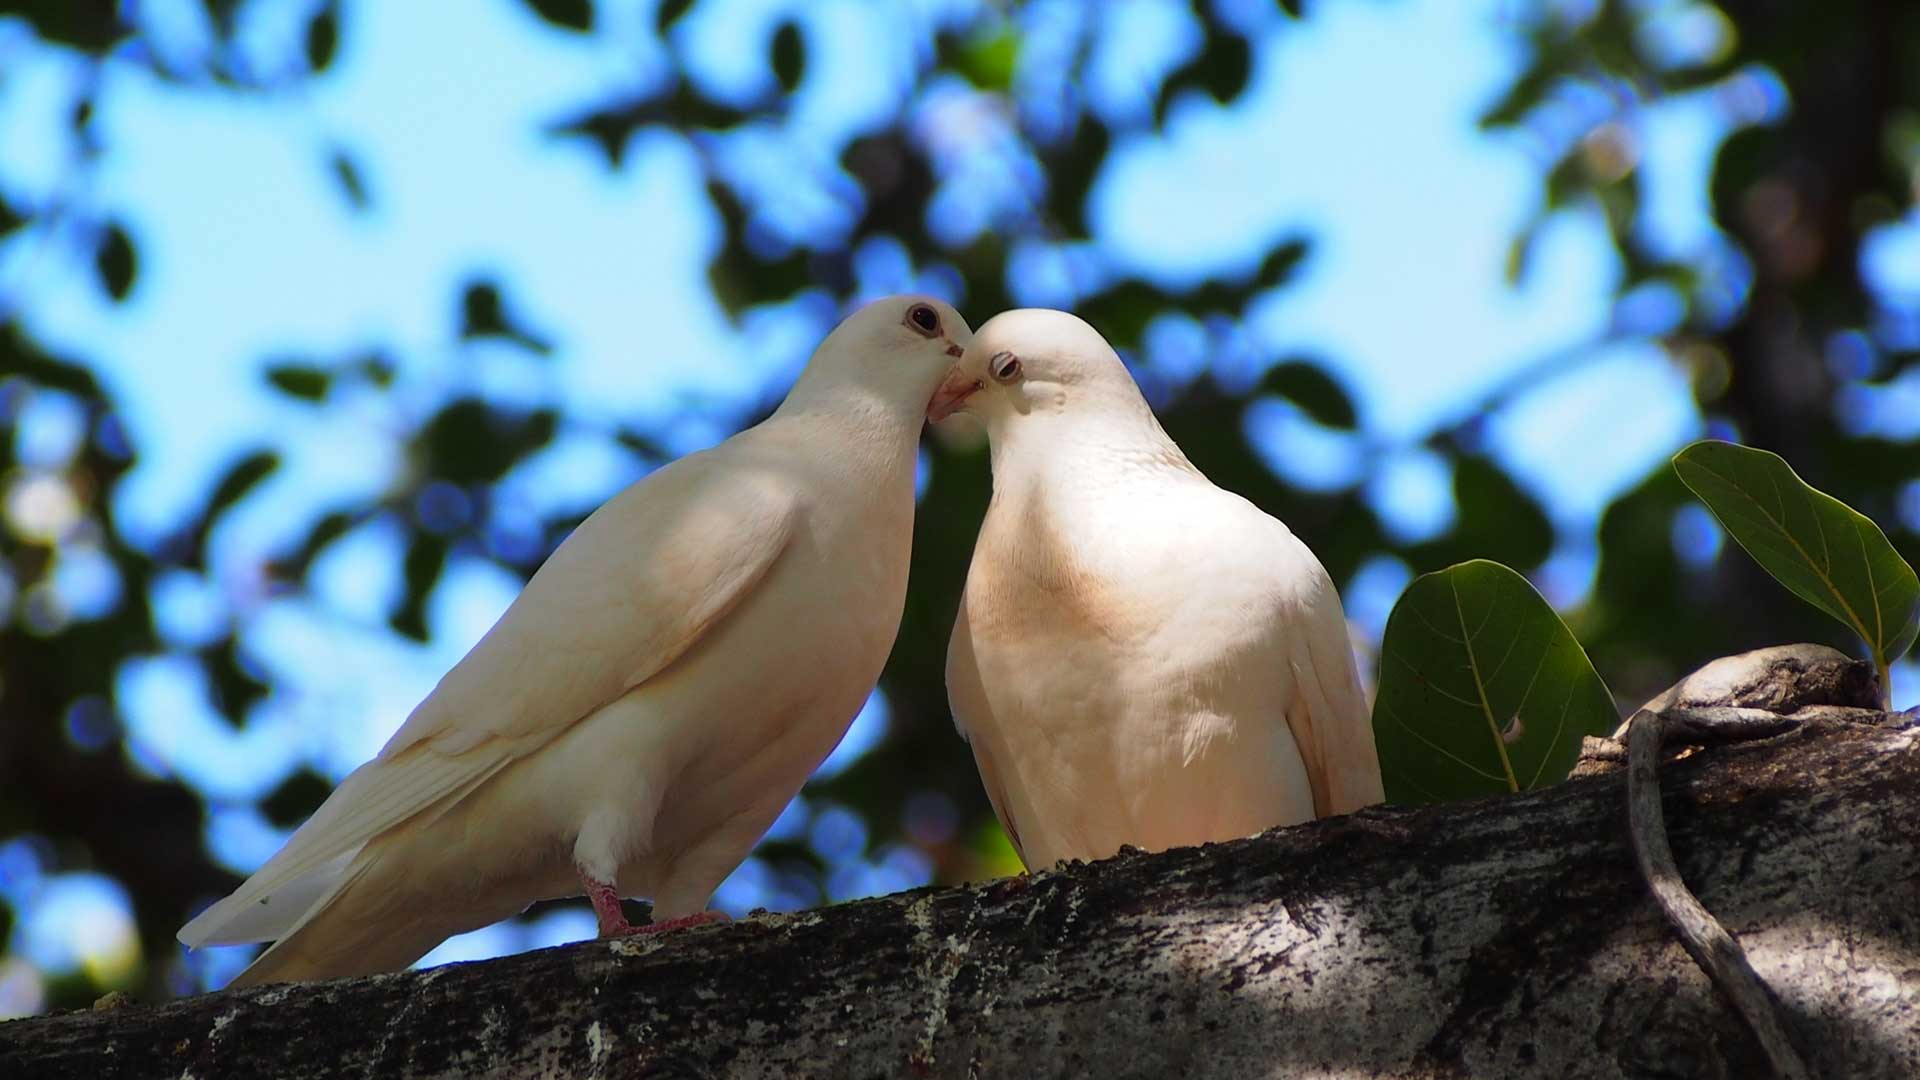 Two of our white doves sitting on a tree branch.